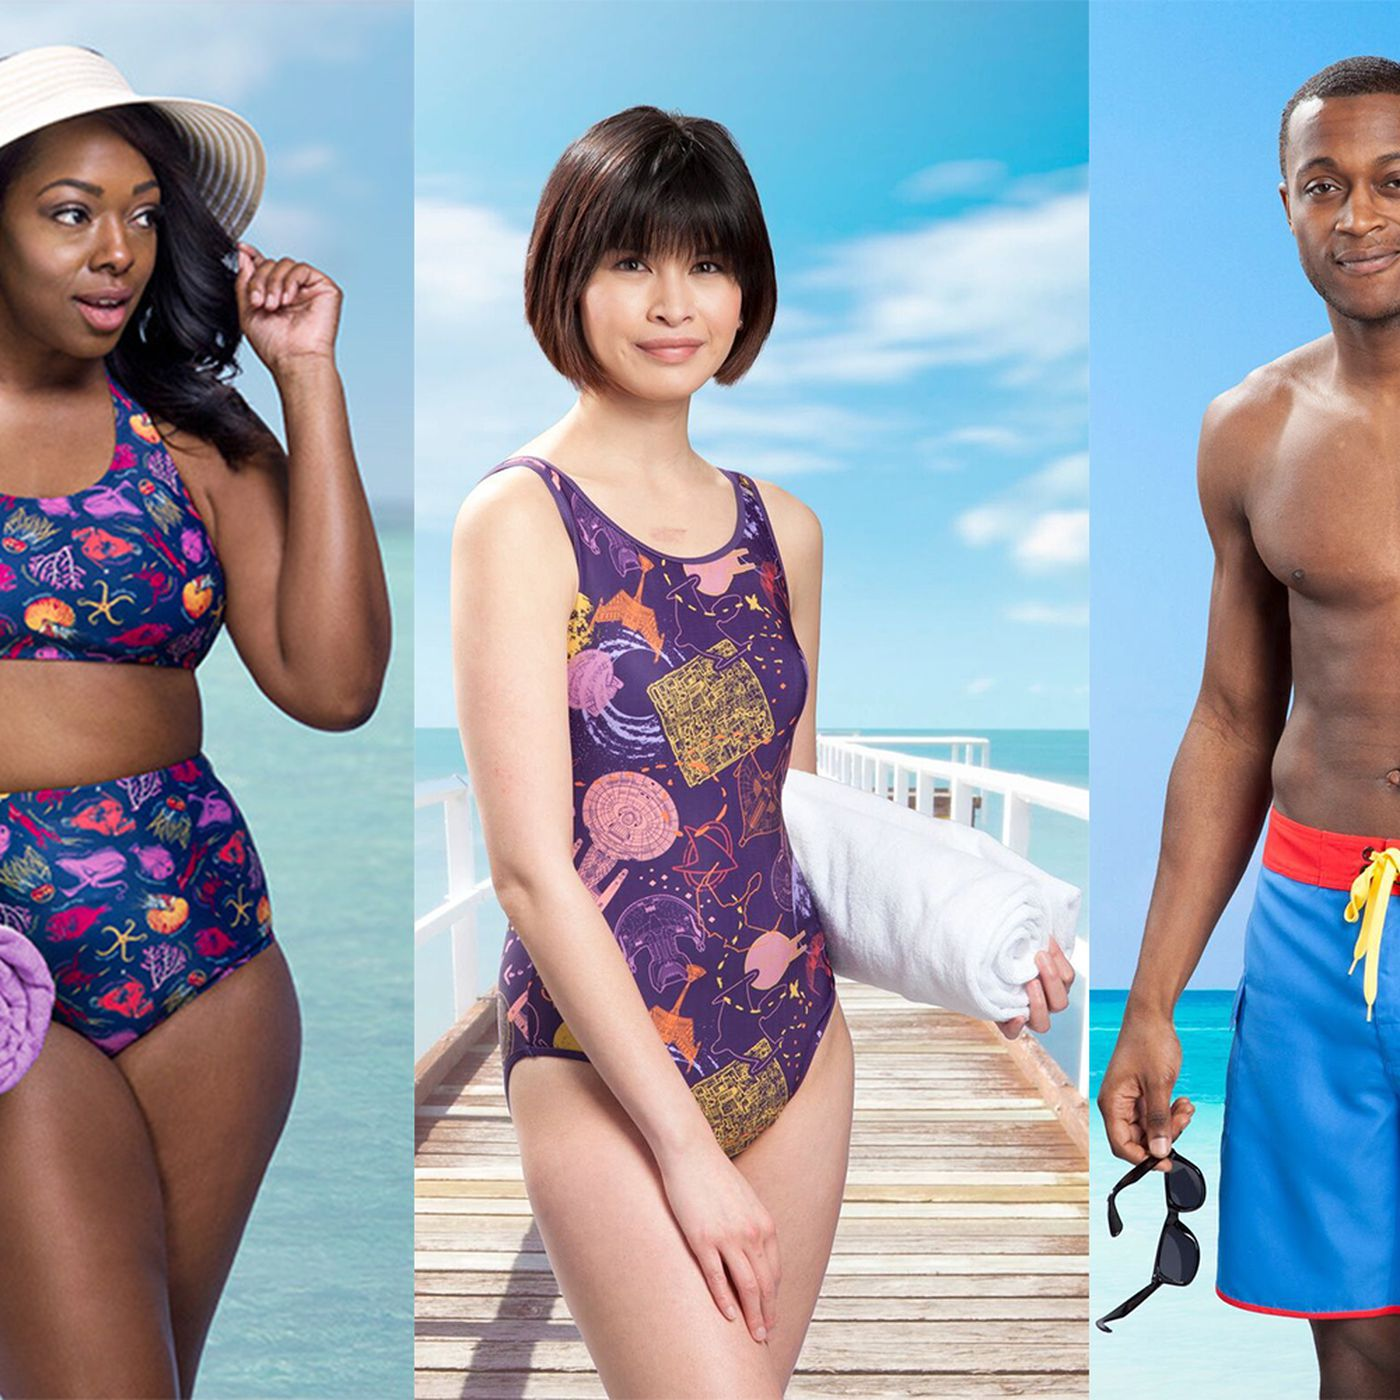 a9cd2a6ba58f0 ThinkGeek's new swimwear collection features Mario, Captain America and  corgis